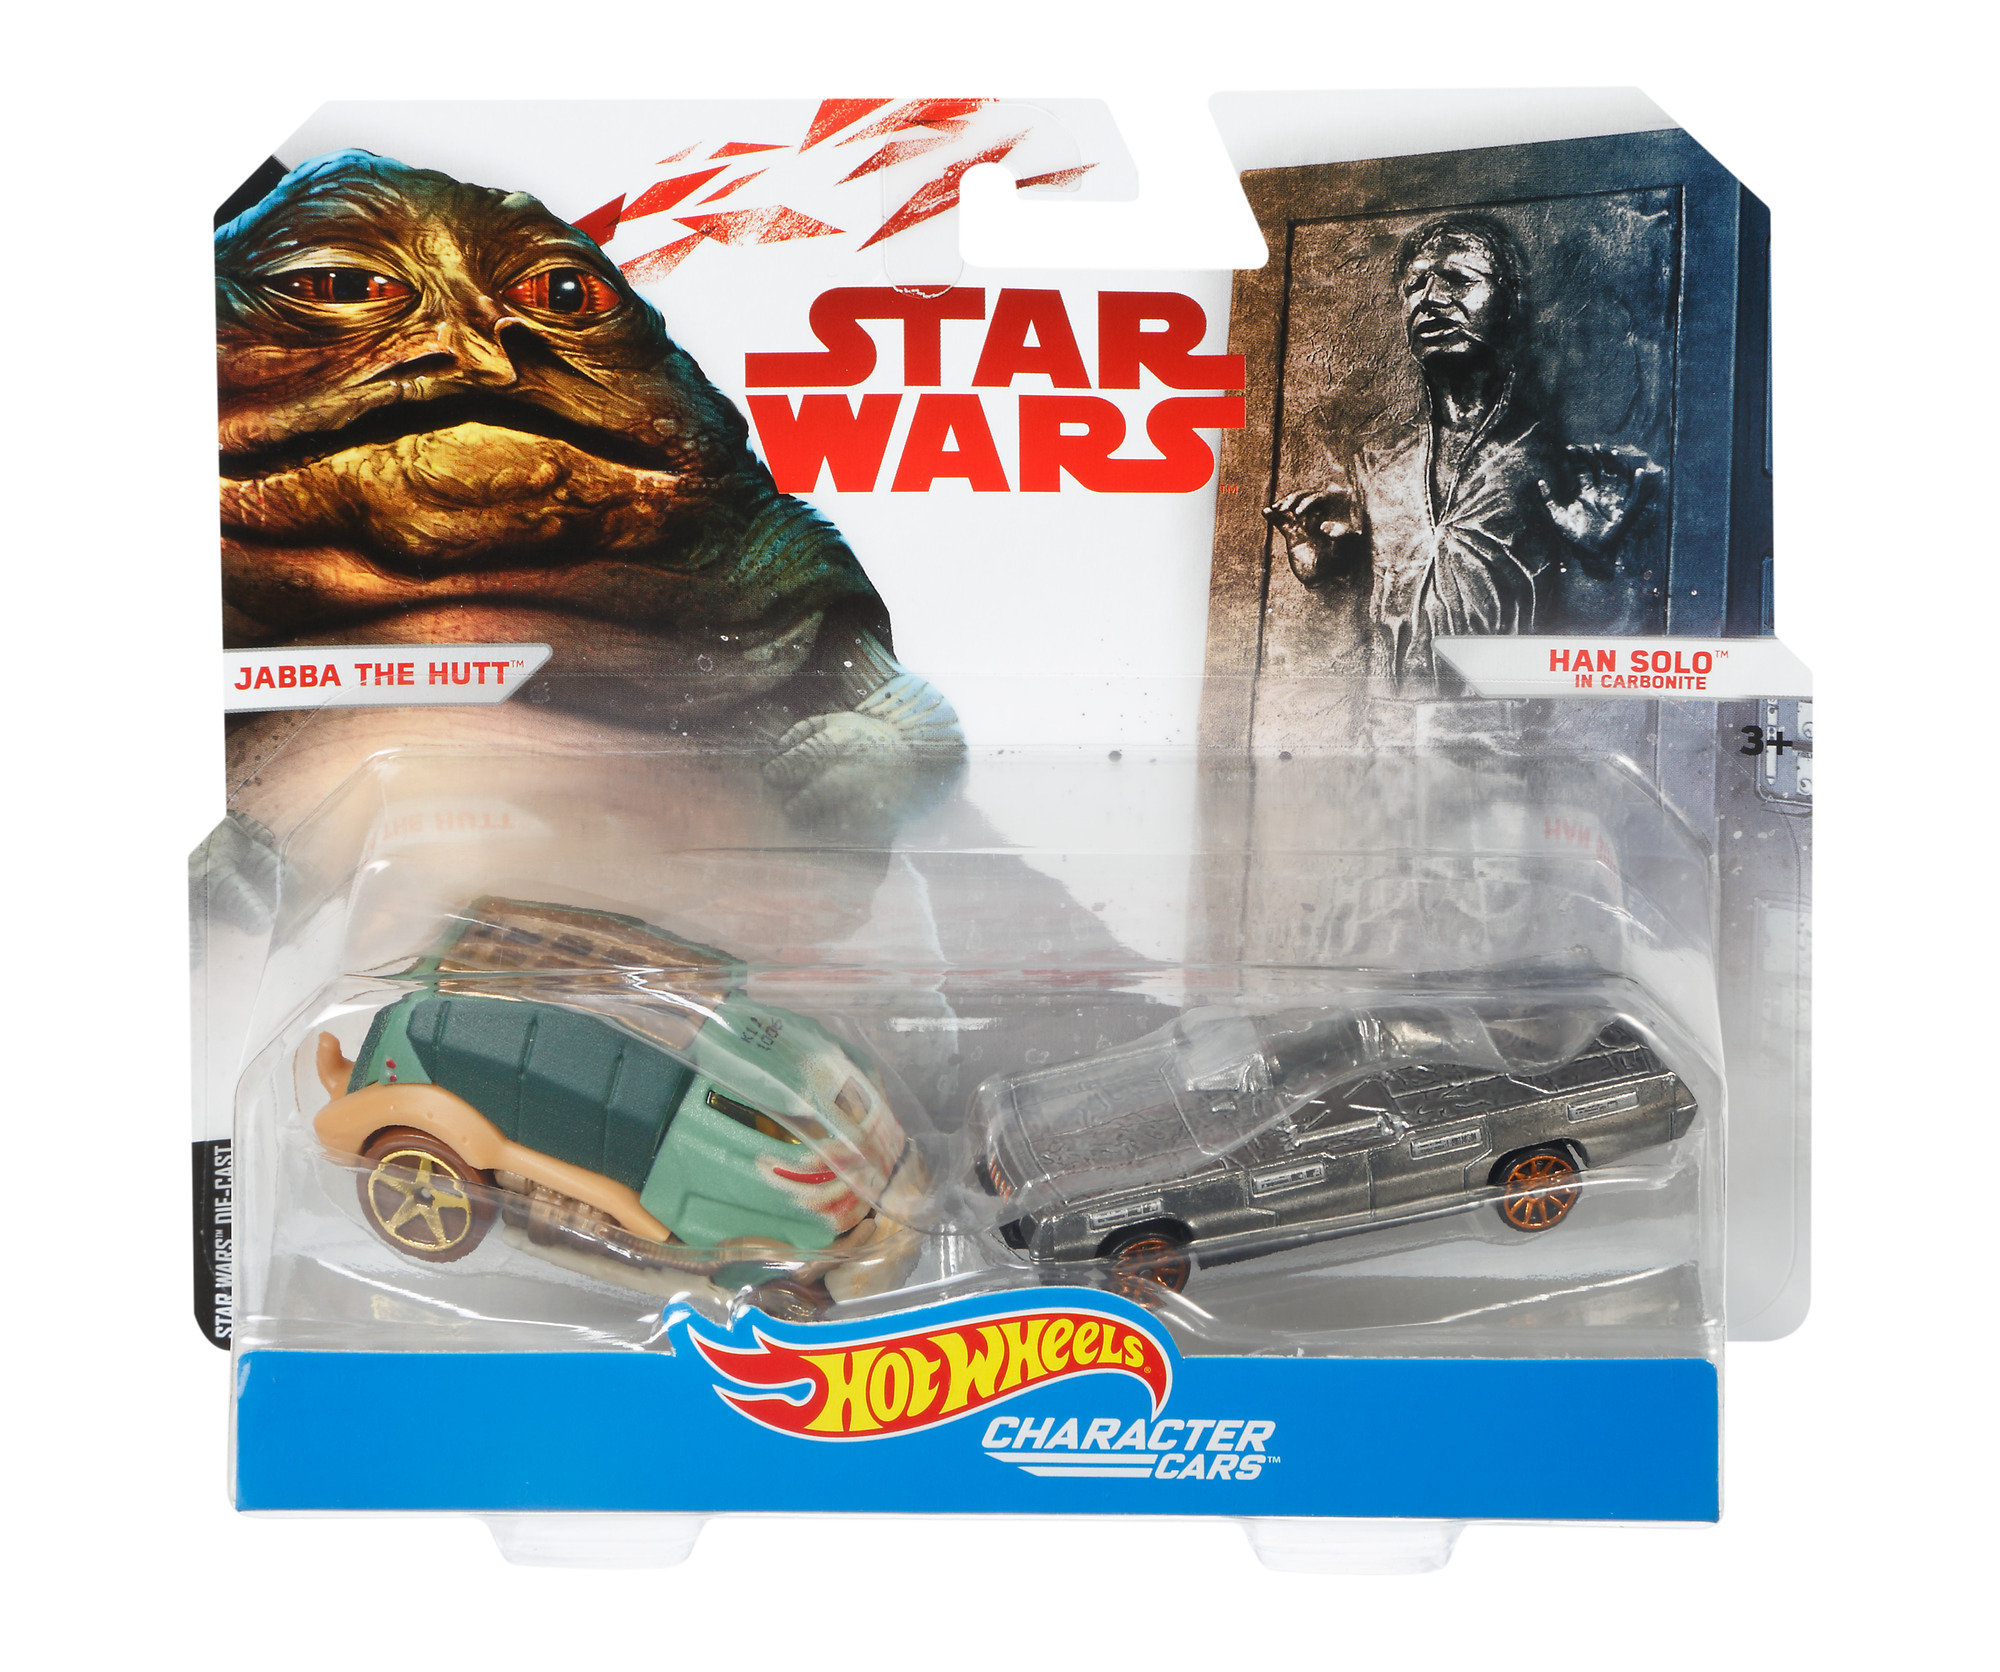 Hot Wheels Star Wars Character Cars Han Solo, 1.0 CT by Mattel